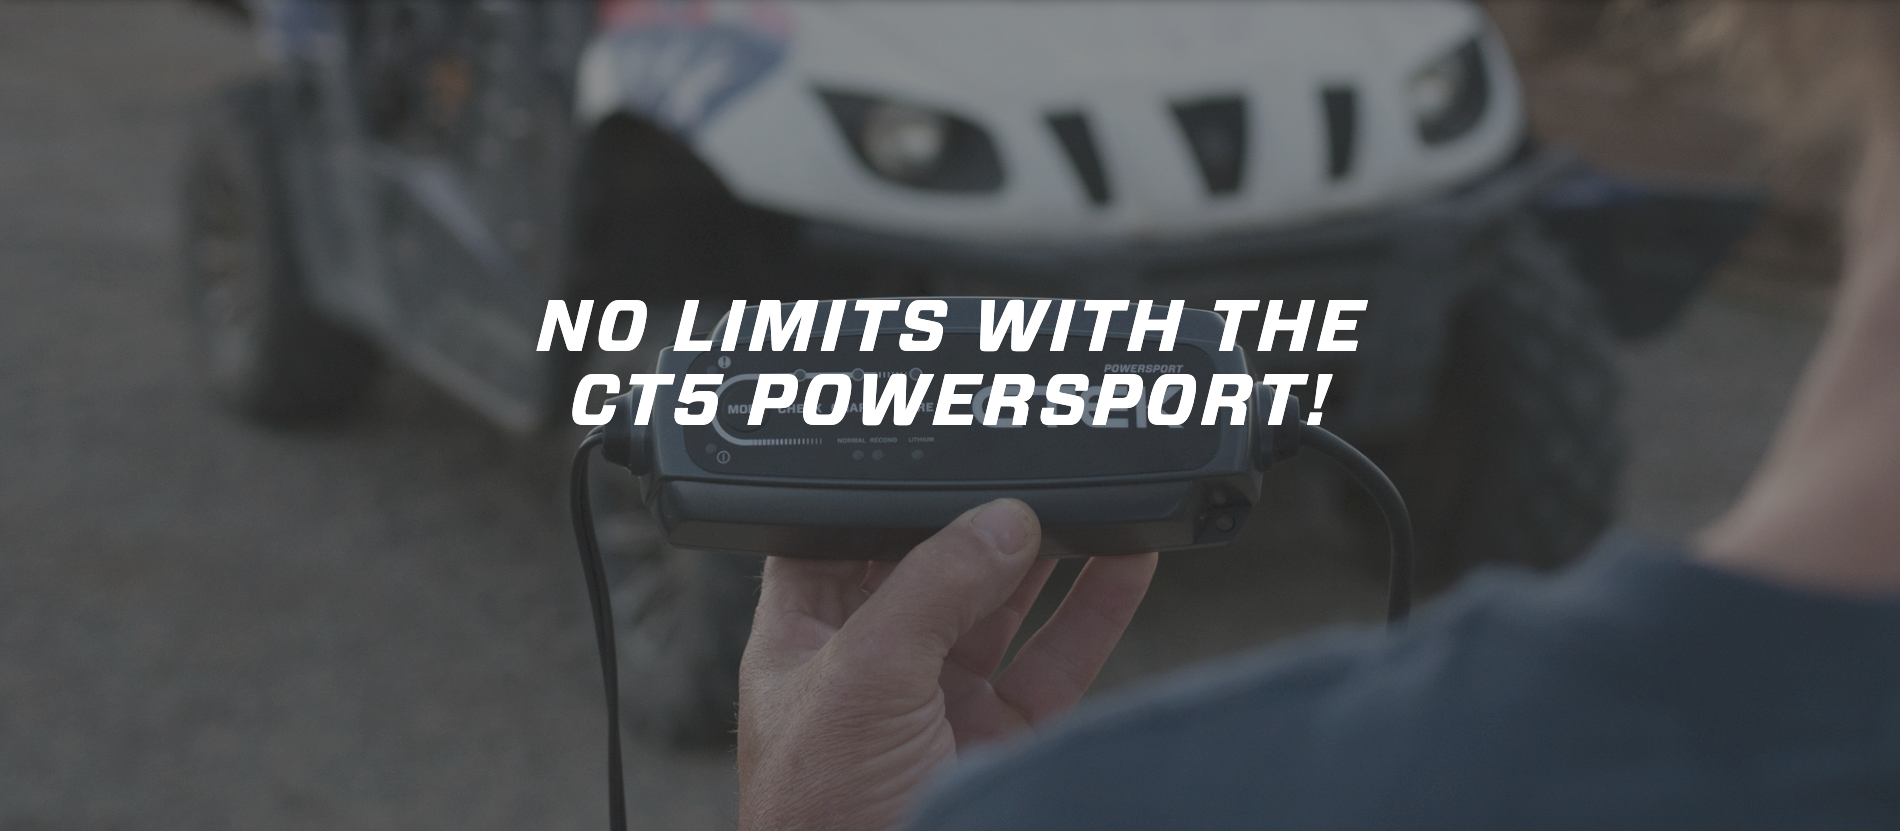 CT5 Powersport for UTV, Jetski, Snowmobile, Motorsports and more.